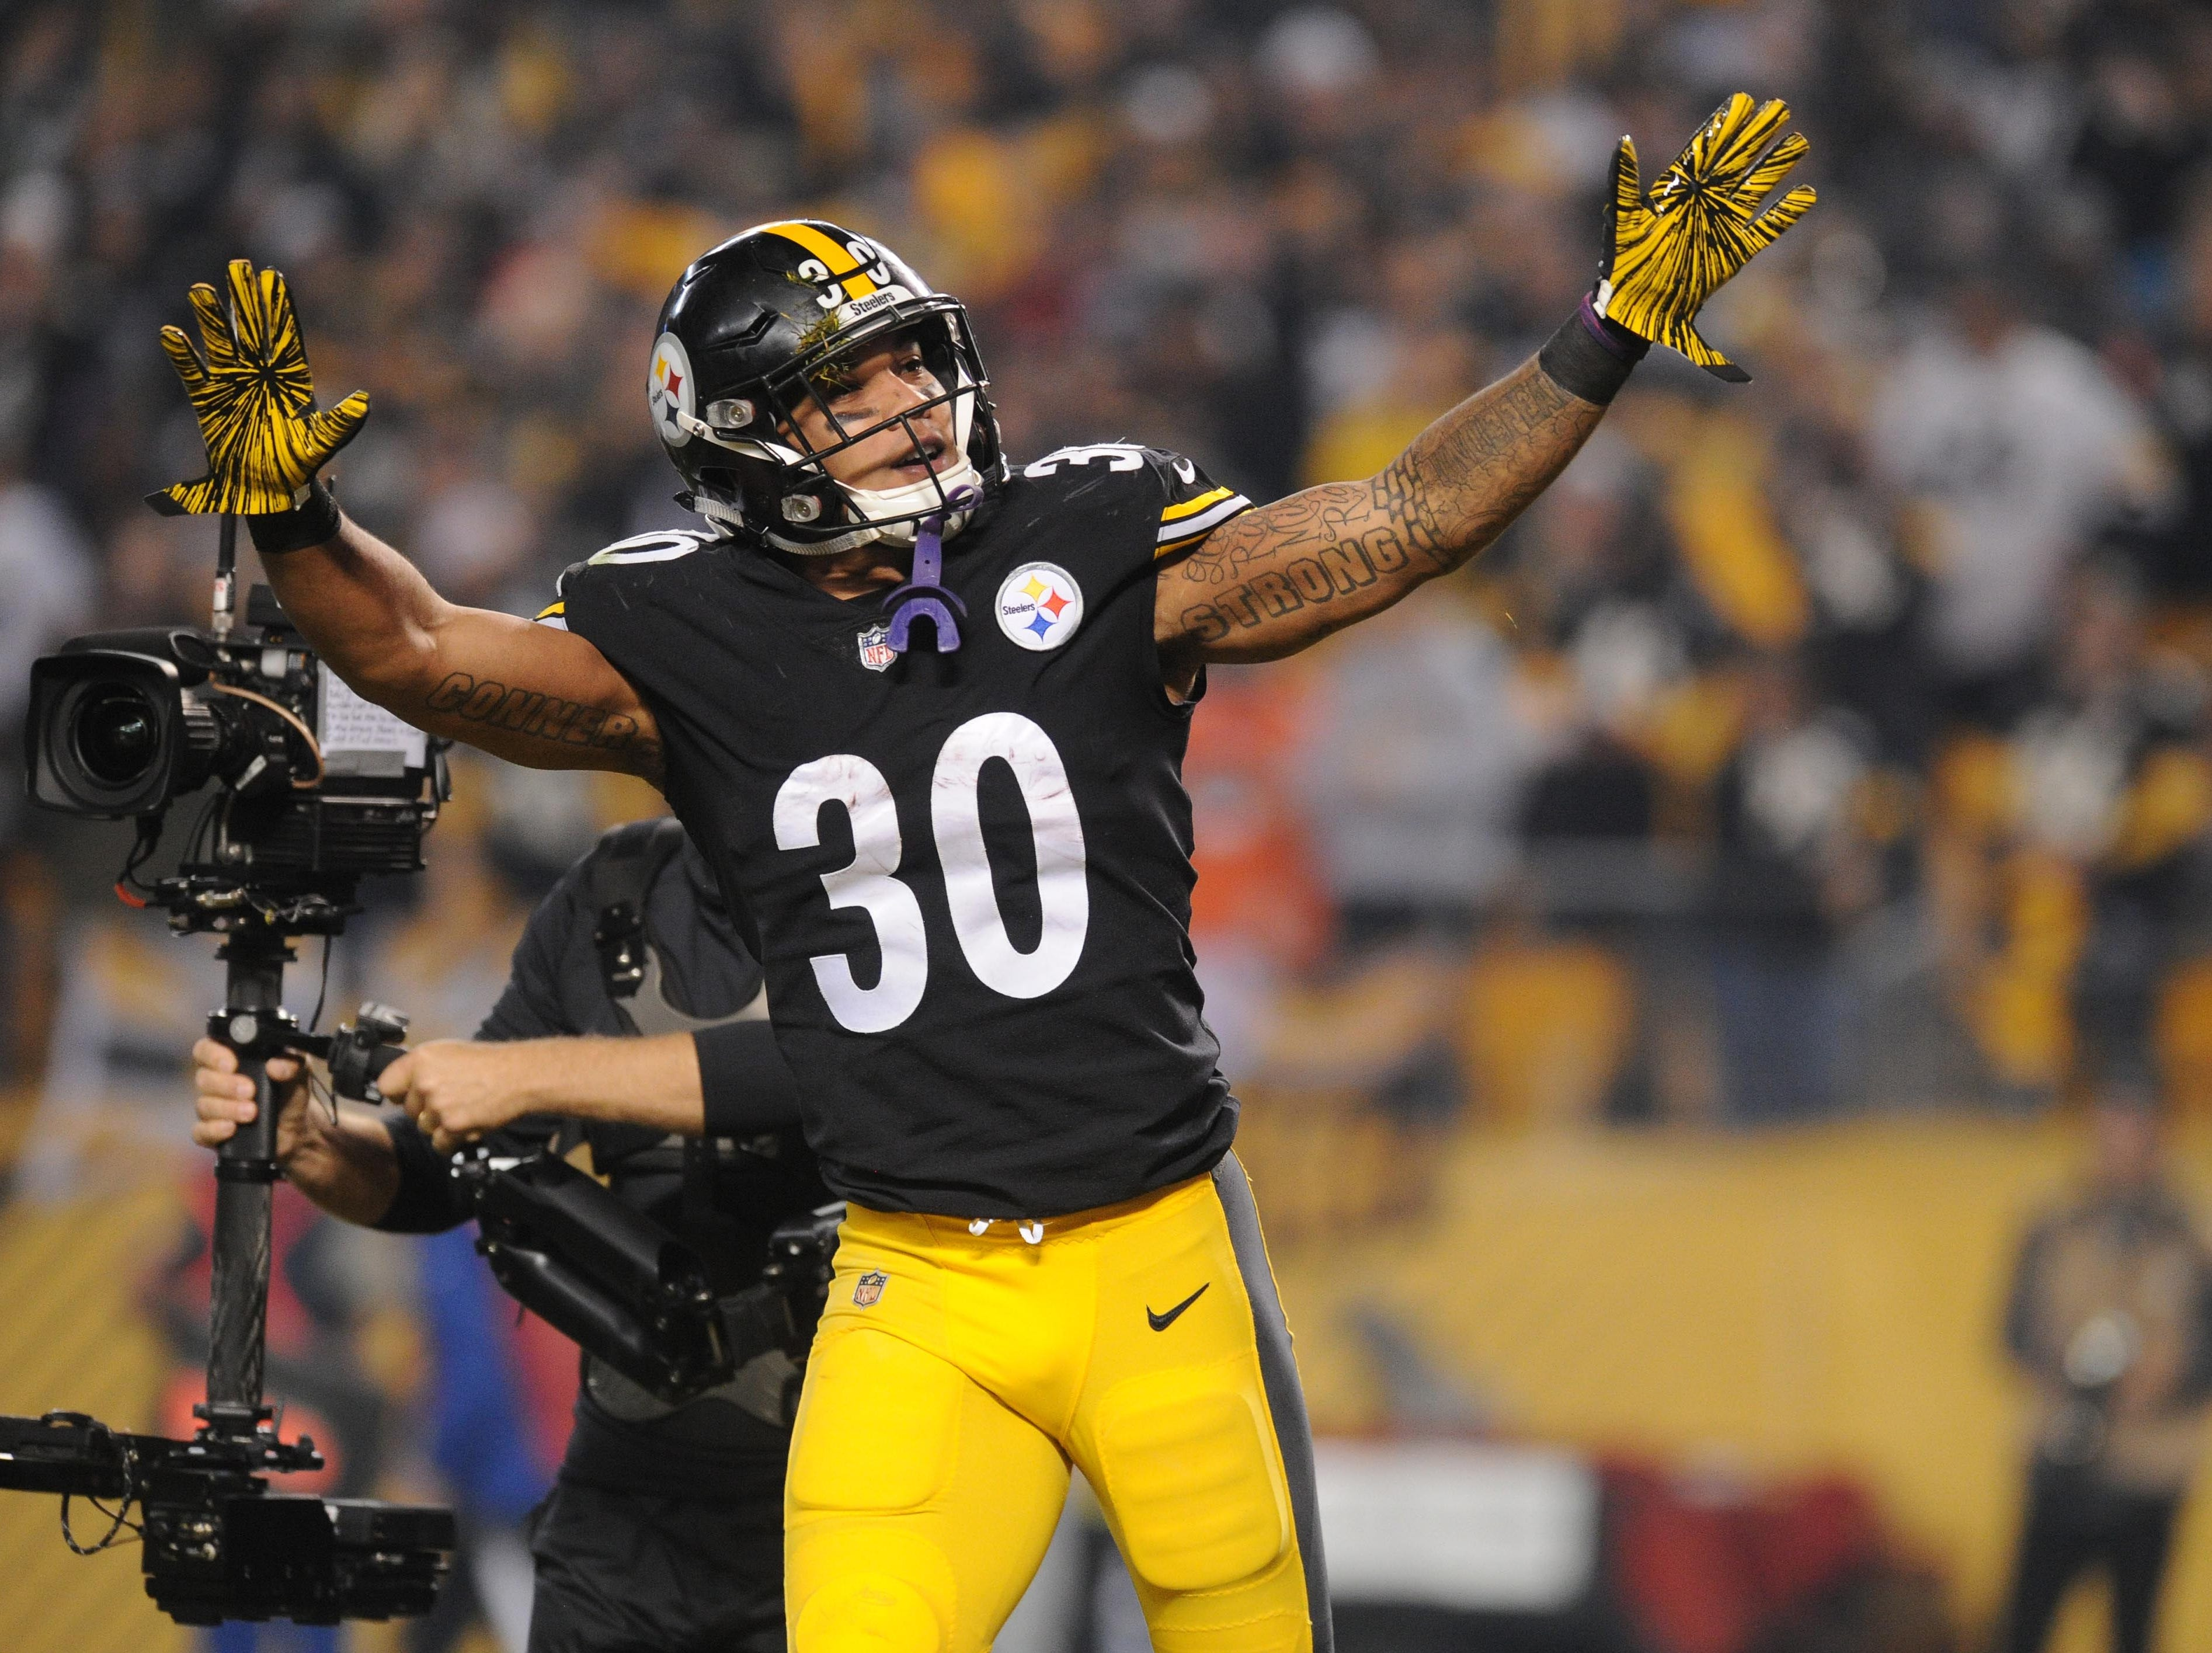 Steelers running back James Conner celebrates a touchdown against the Chargers.